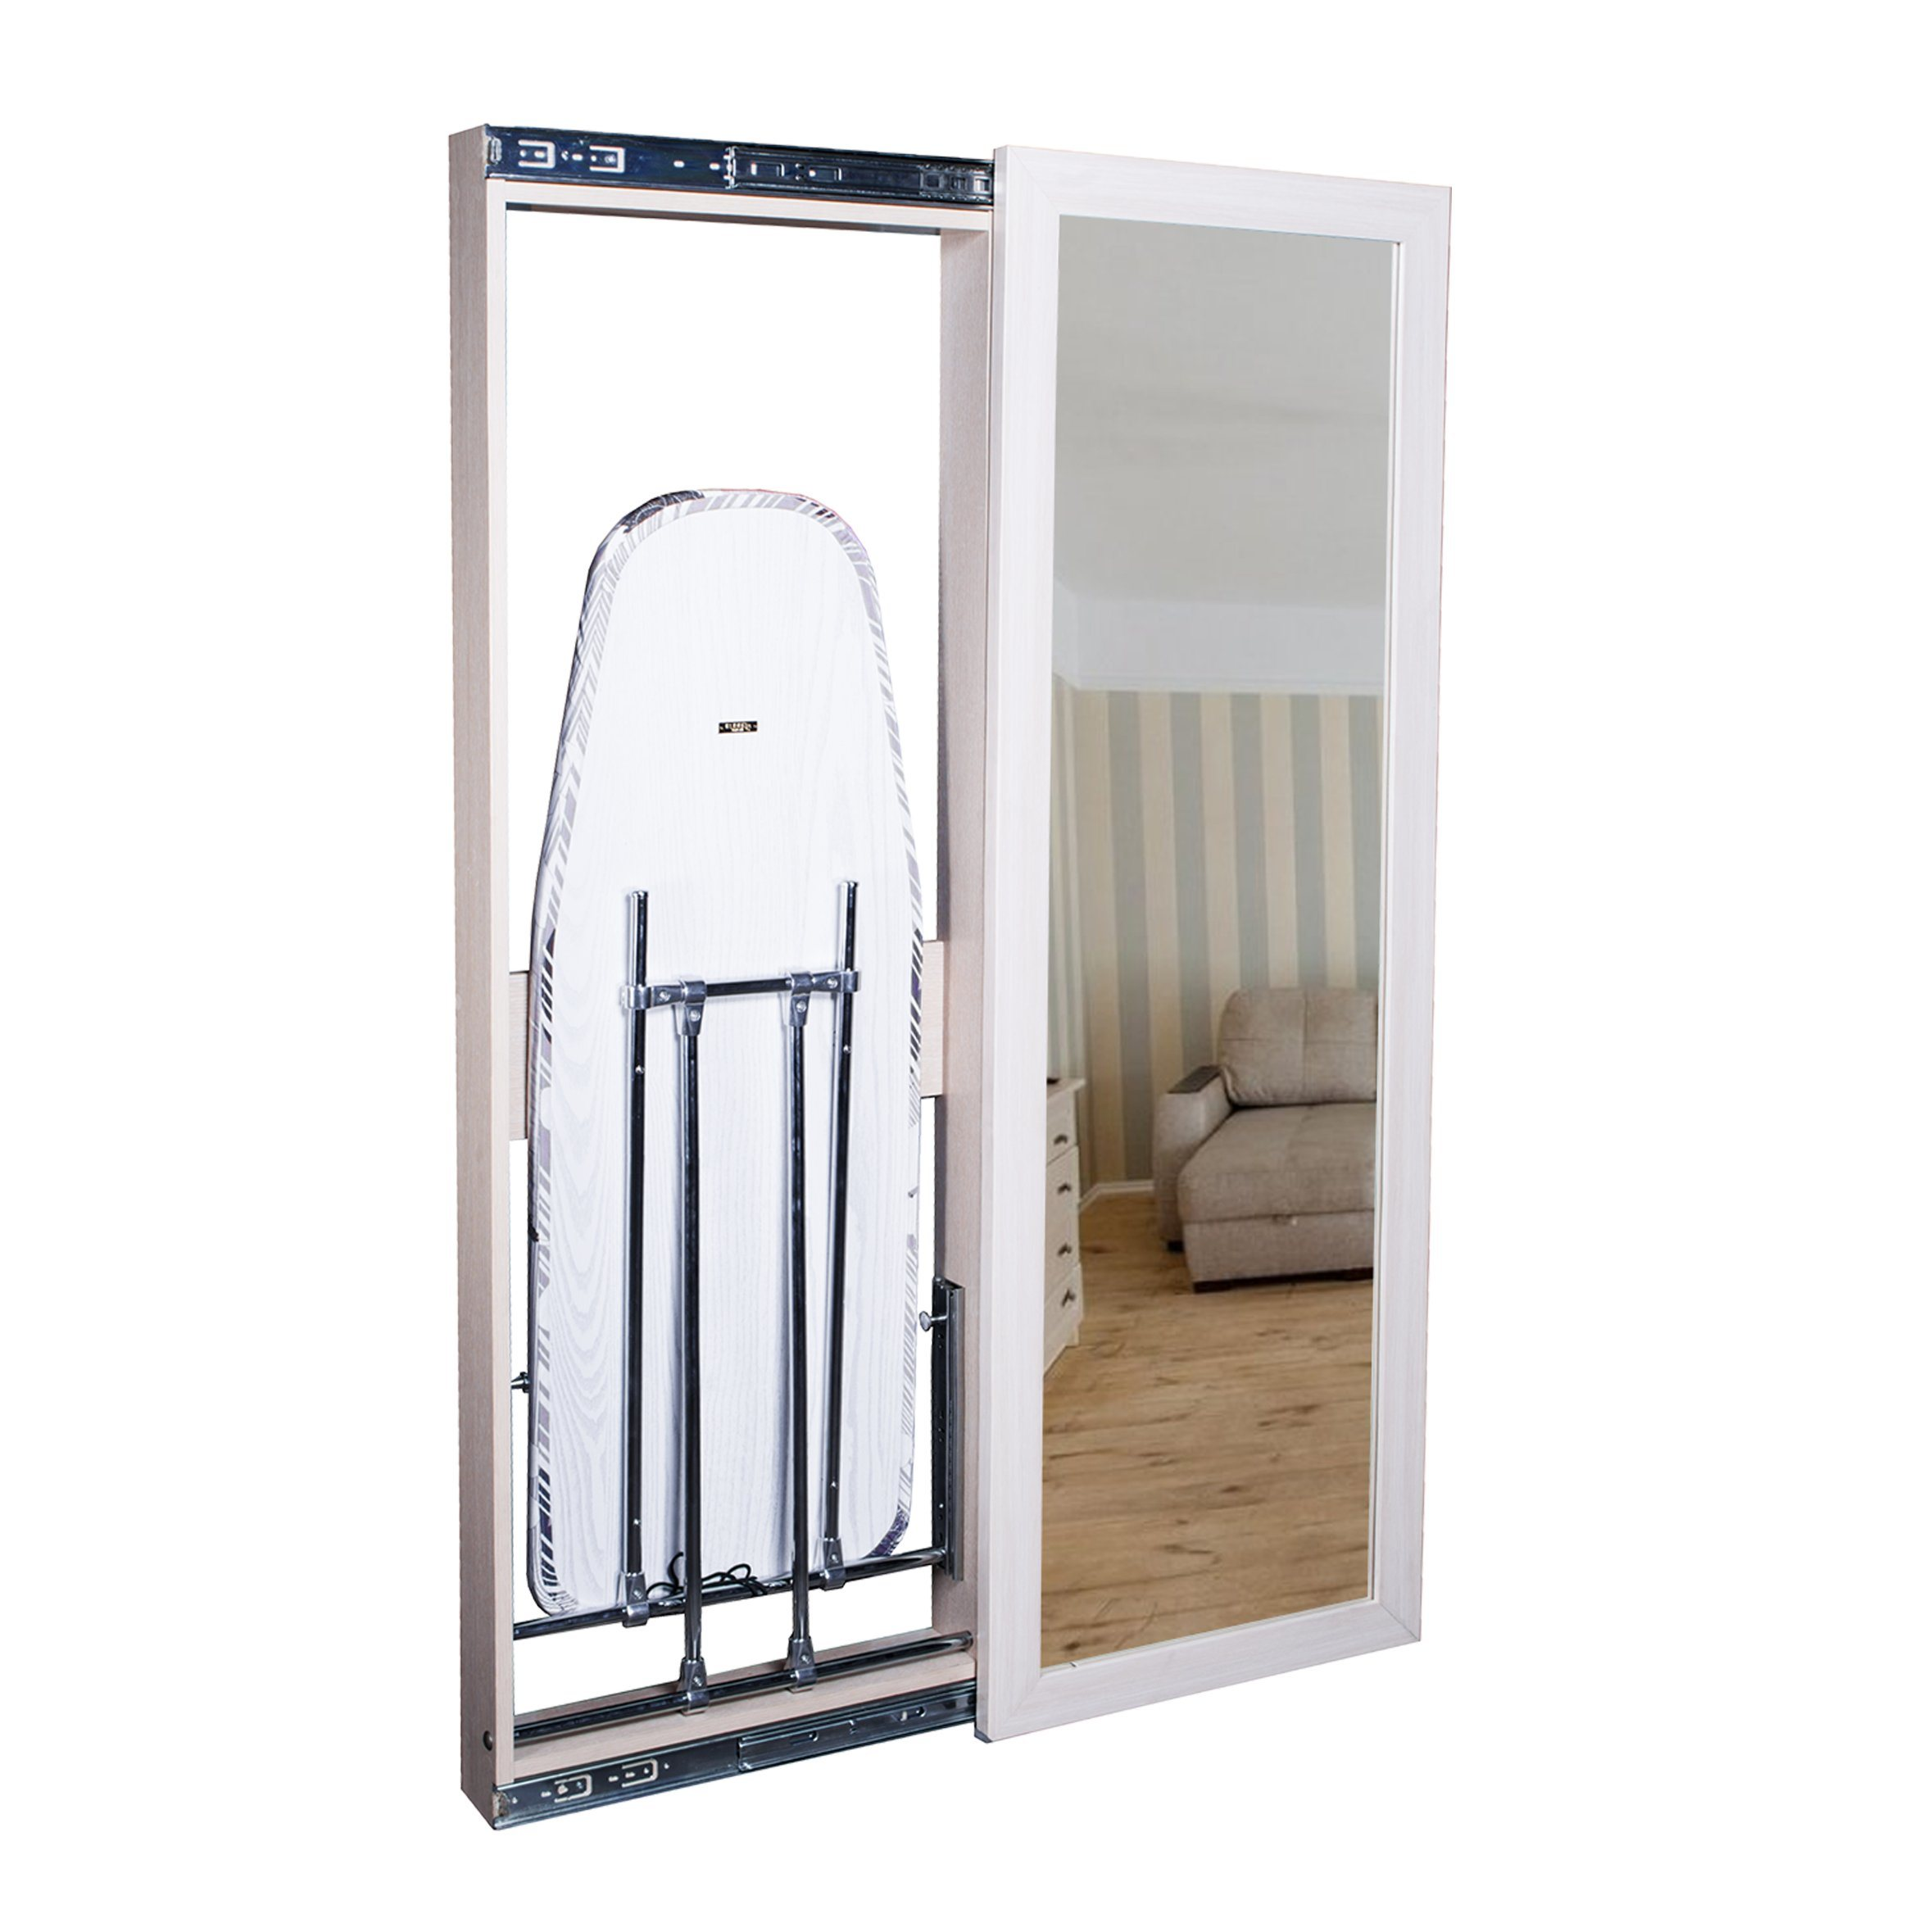 China Hot Sell Home Furniture Beautiful Wooden Desktop Ironing Board Folding Ironing Board Cabinet China Wall Mounted Ironing Board With Mirror And Dressing Mirror Price